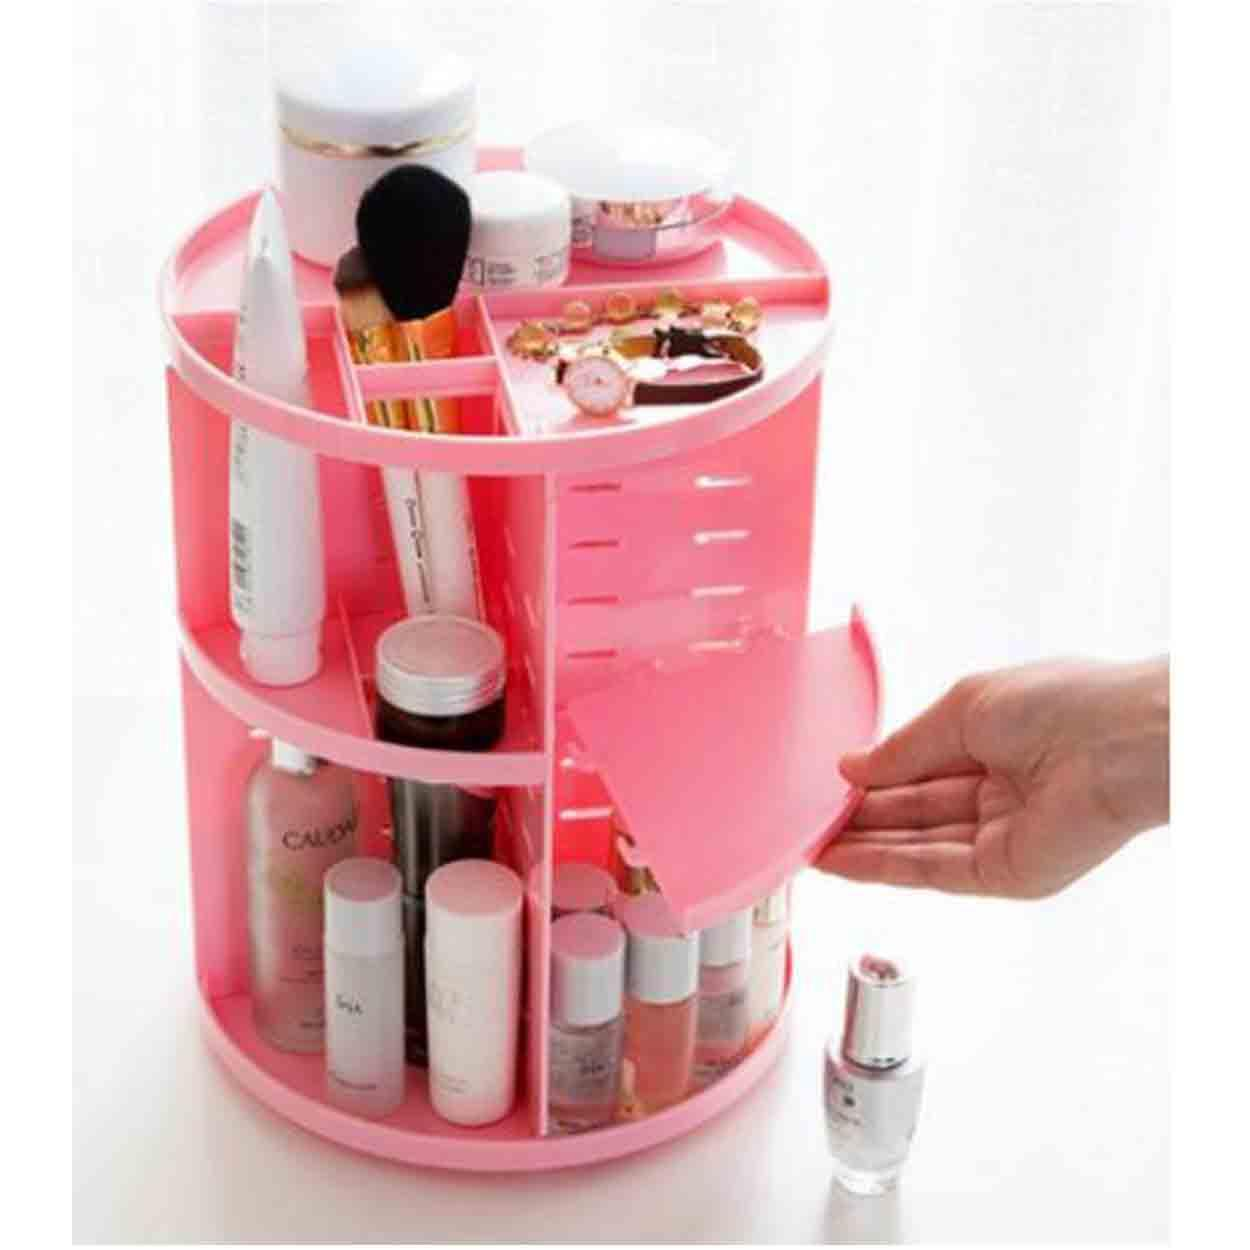 (Pink) 360 Rotating Make up Organizer 360 Degree Rotating Cosmetic Storage Display Make Up Rack Beauty Care Holder Rack Clear Cosmetic Drawers Jewelry Makeup Storage Display Organizer Box Philippines